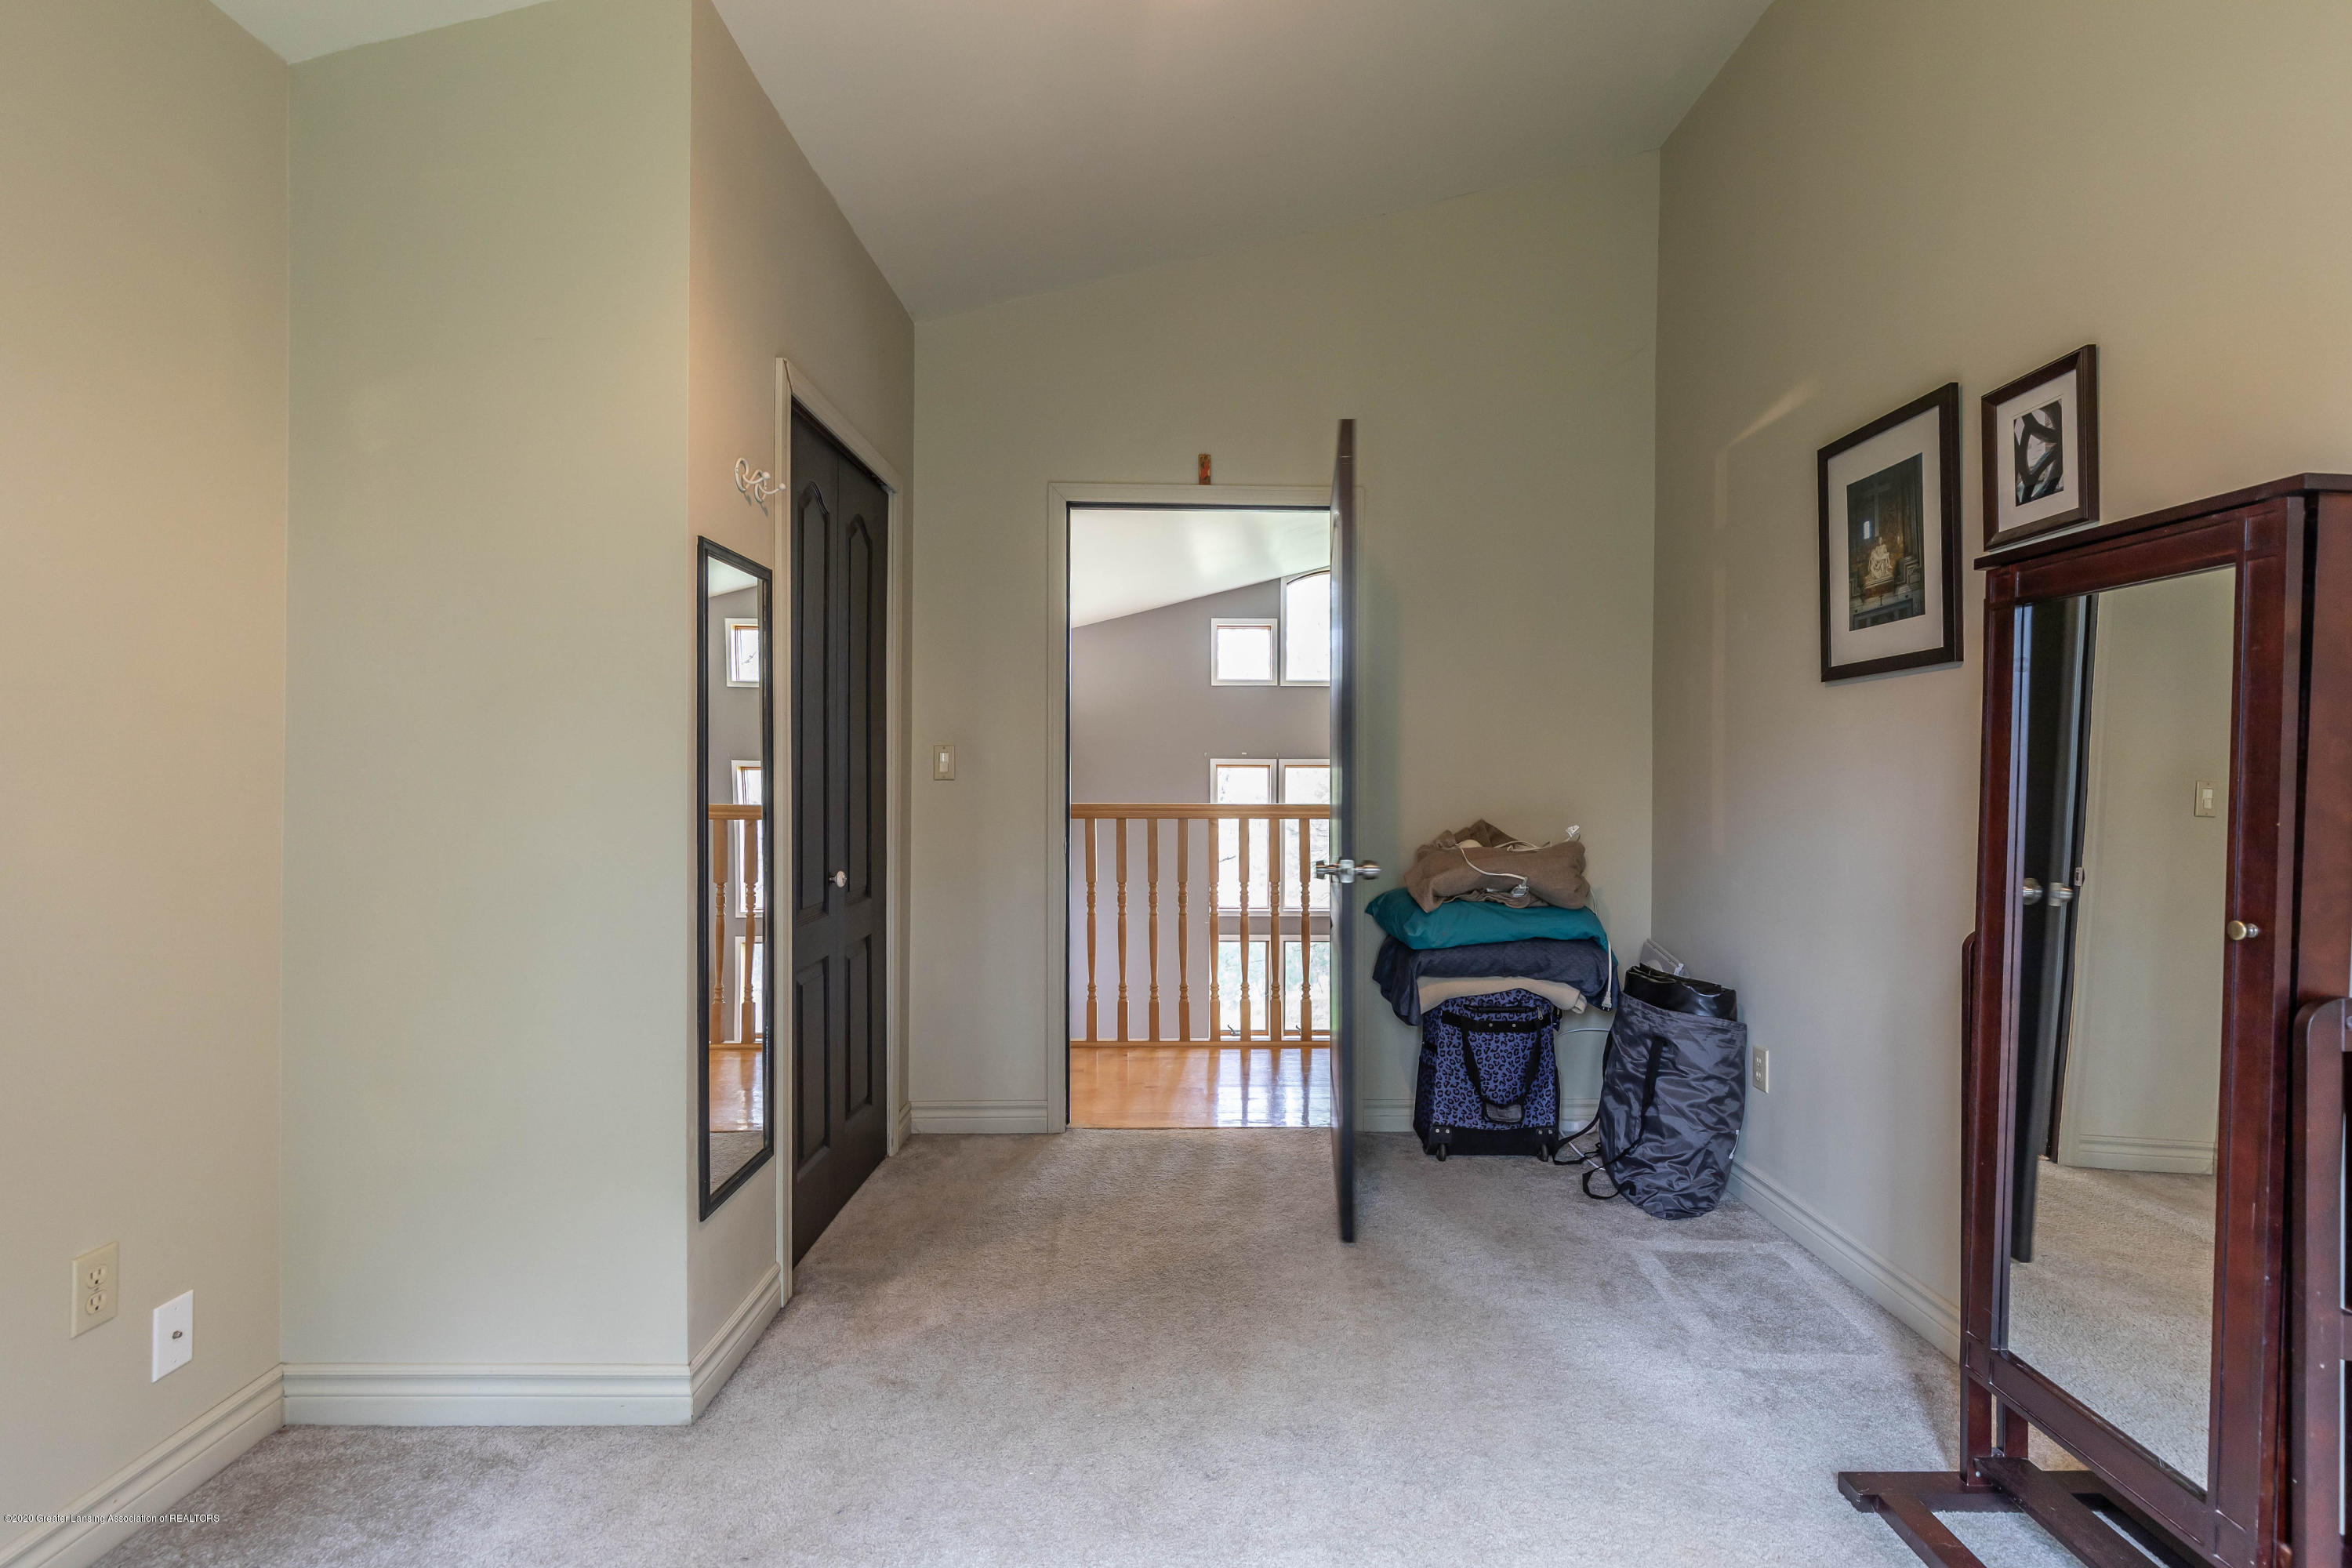 5189 Pittsburg Rd - pittsbed31(1of1) - 32